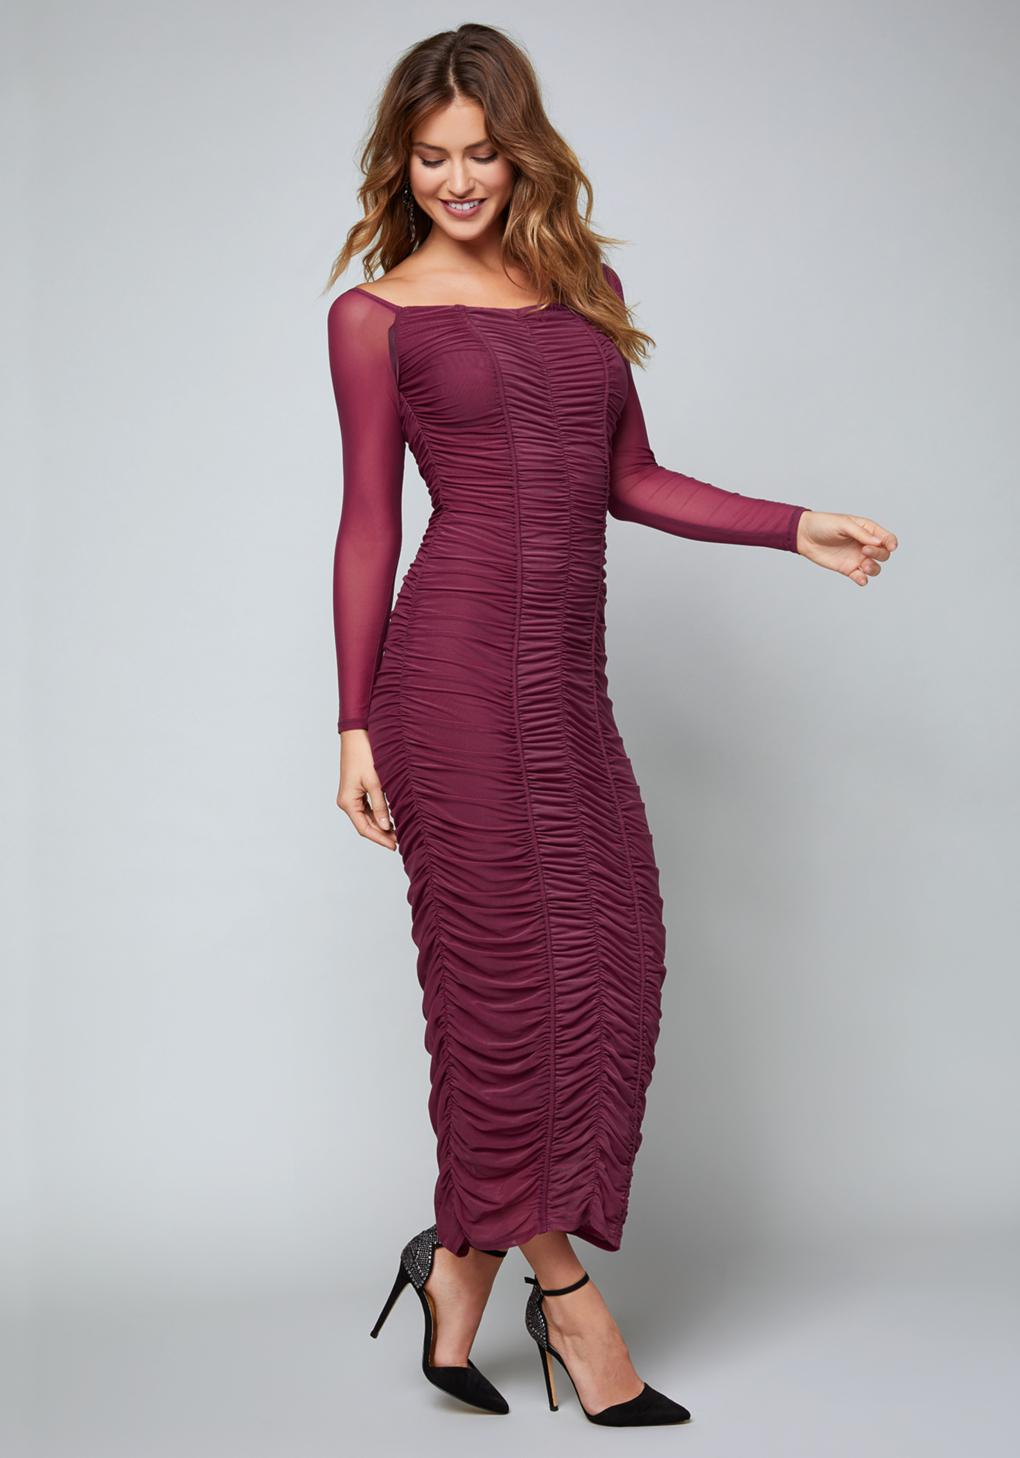 df6d5d5a5a Bebe Belle Ruched Midi Dress in Purple - Lyst